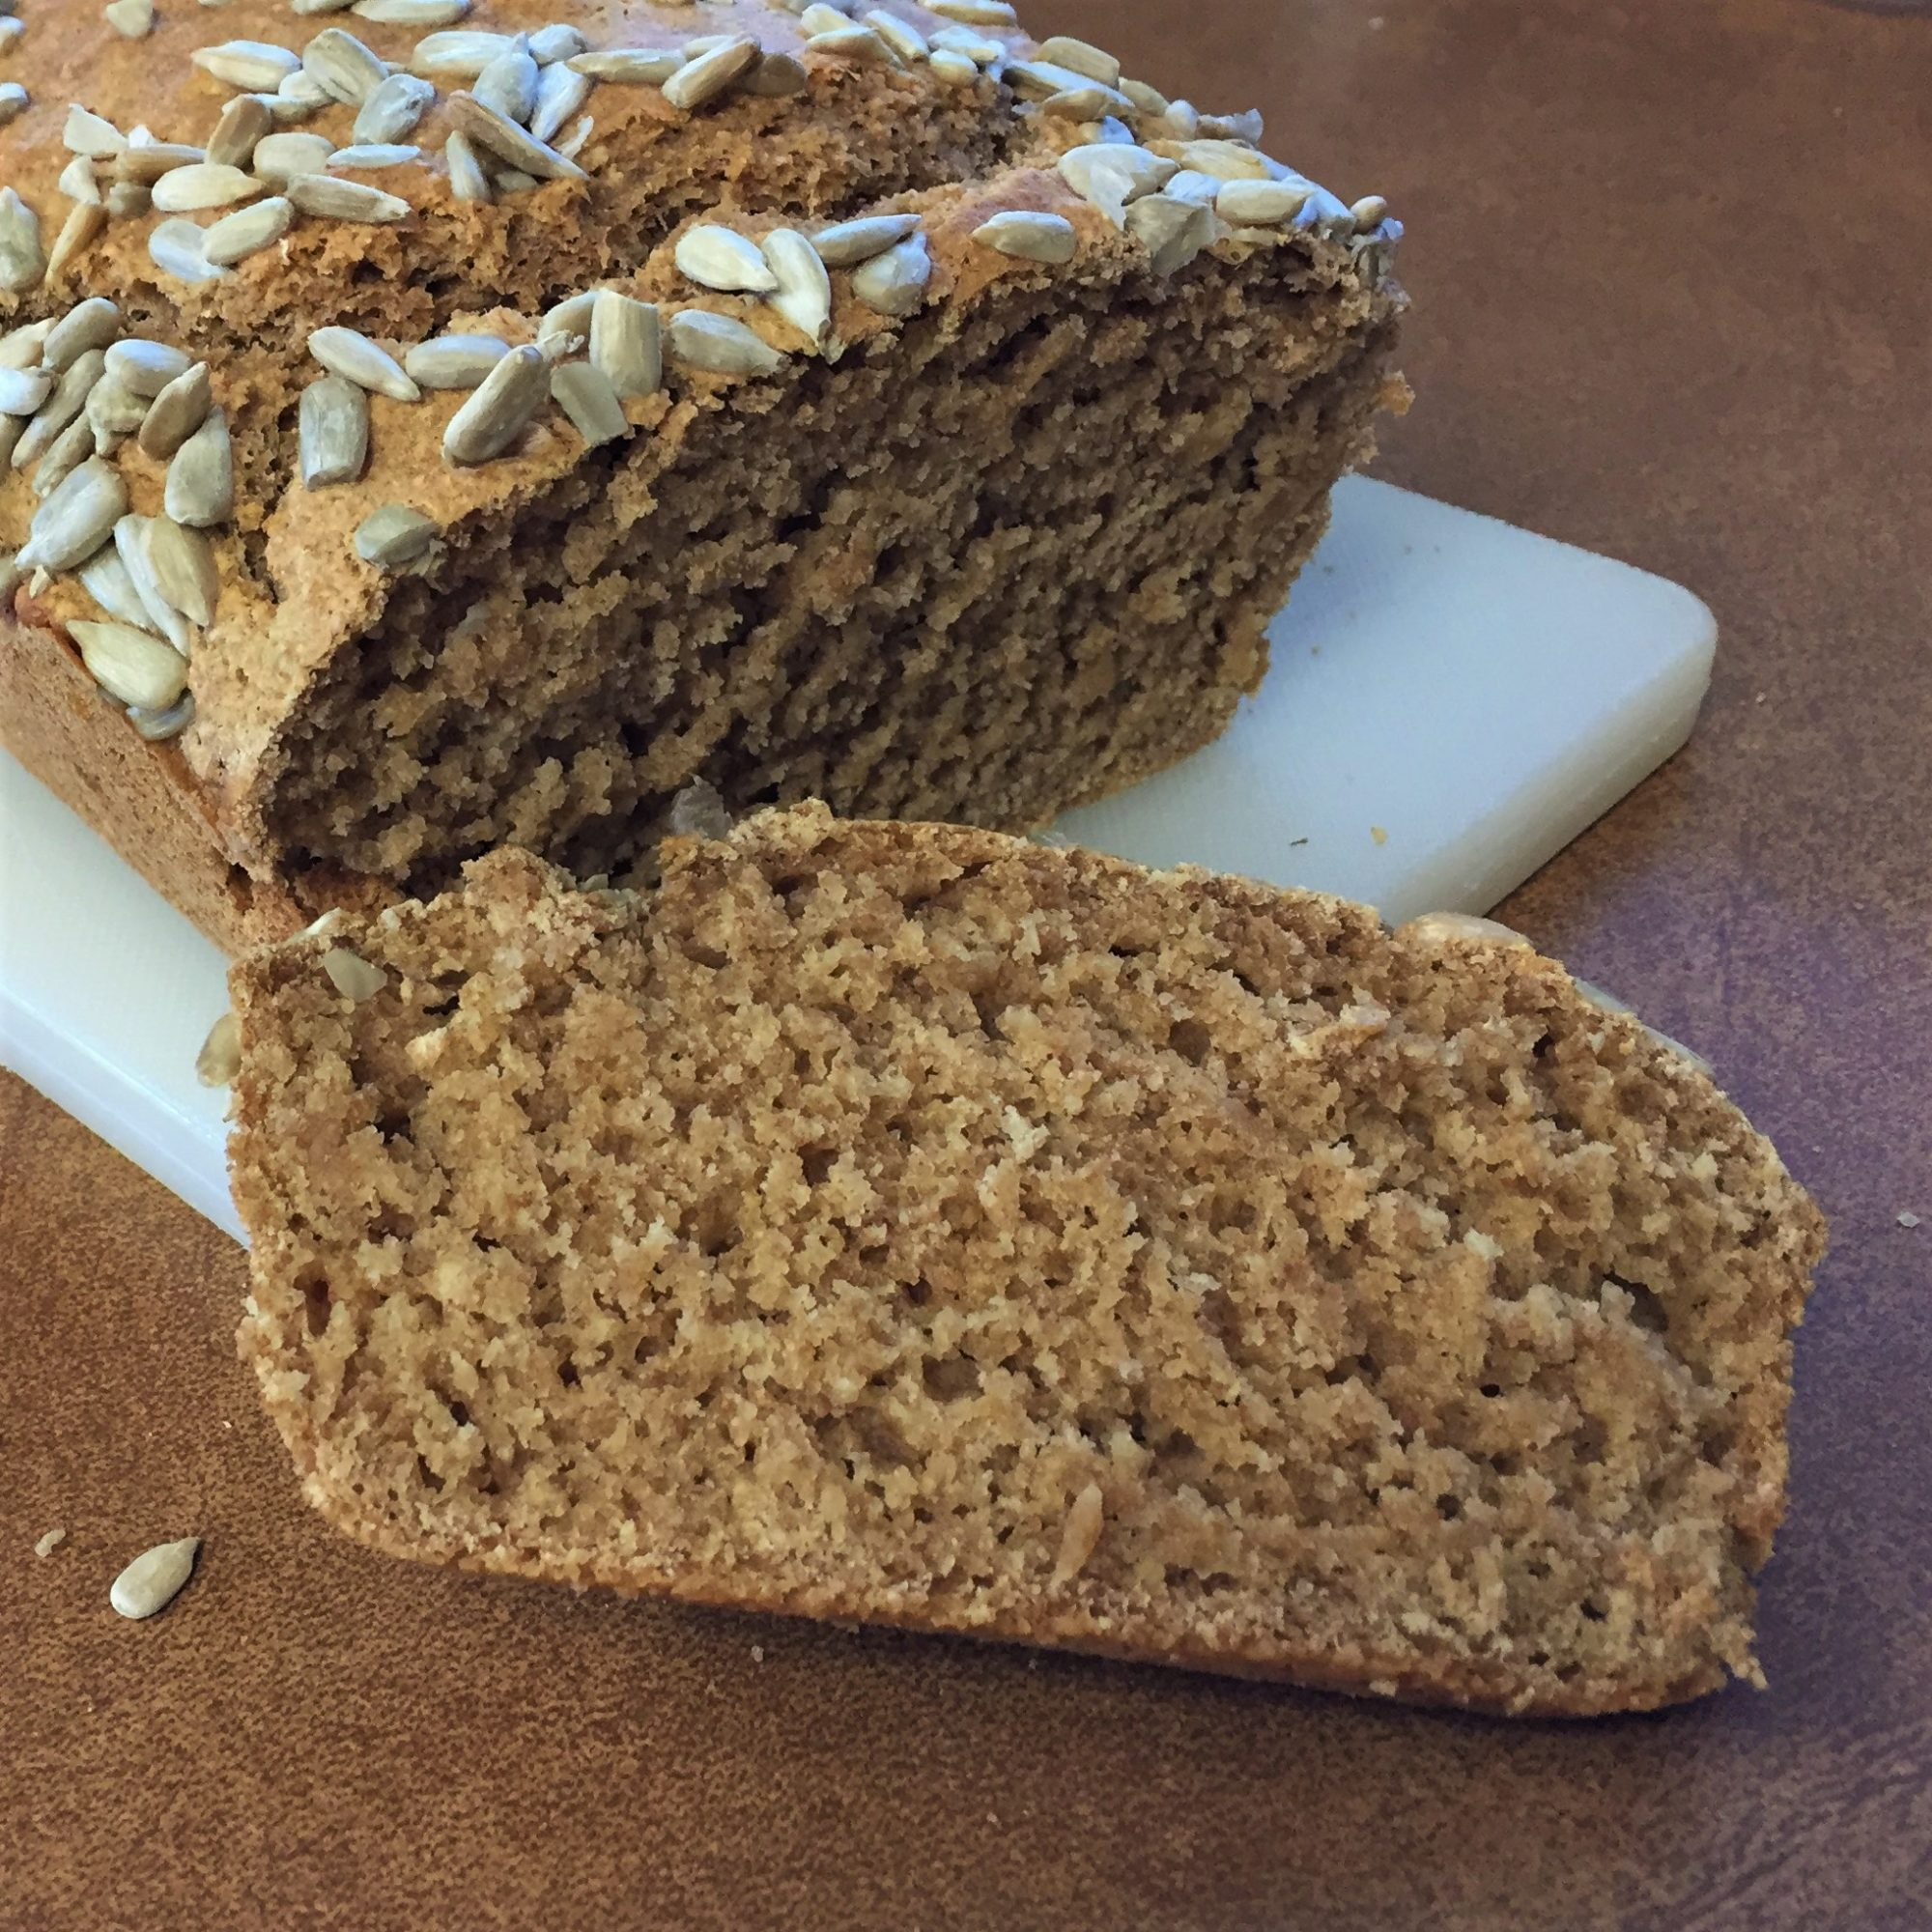 beer bread with one slice cut in the foreground